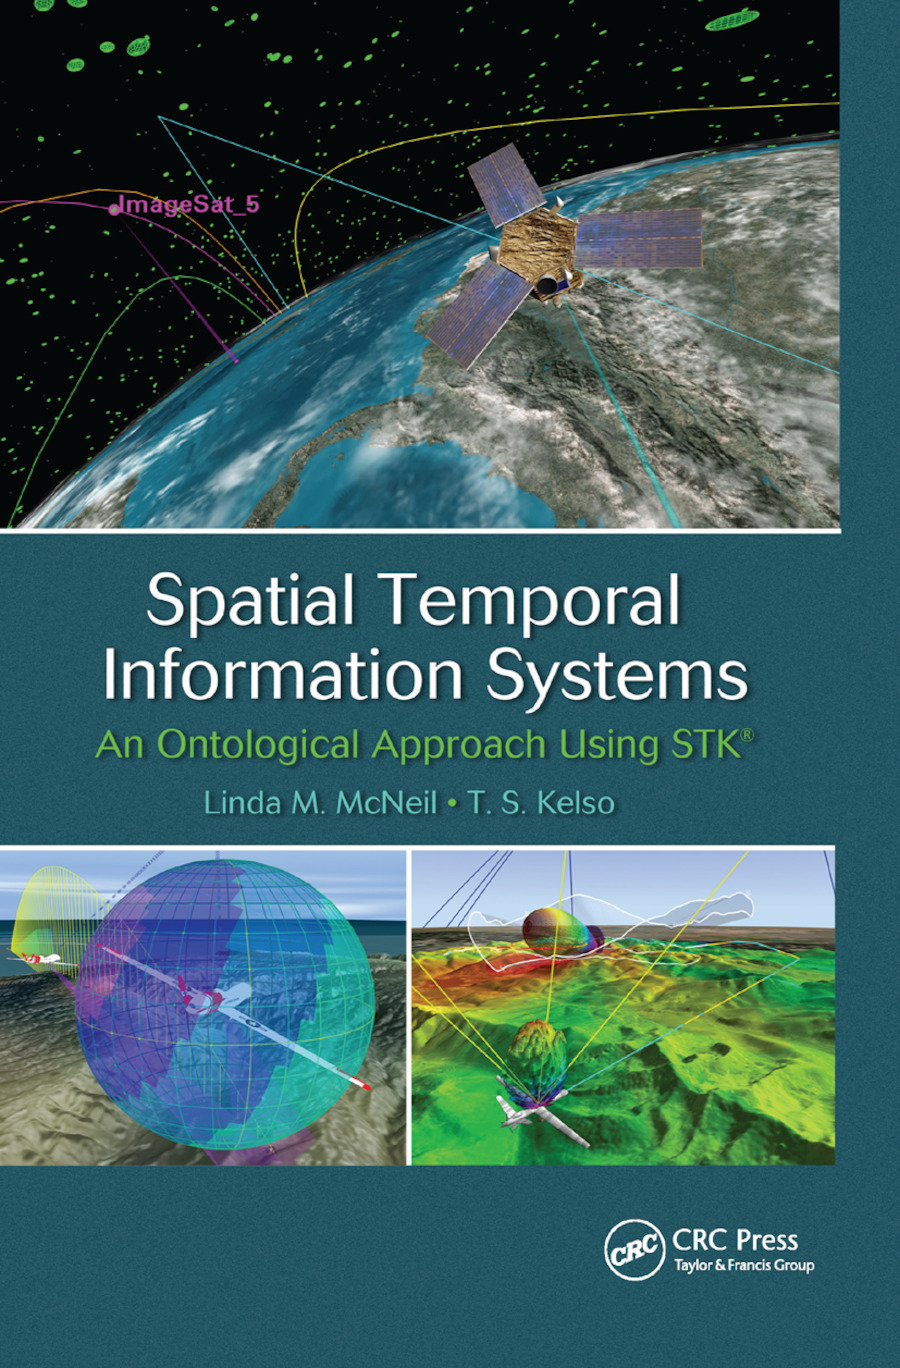 Spatial Temporal Information Systems: An Ontological Approach using STK� book cover